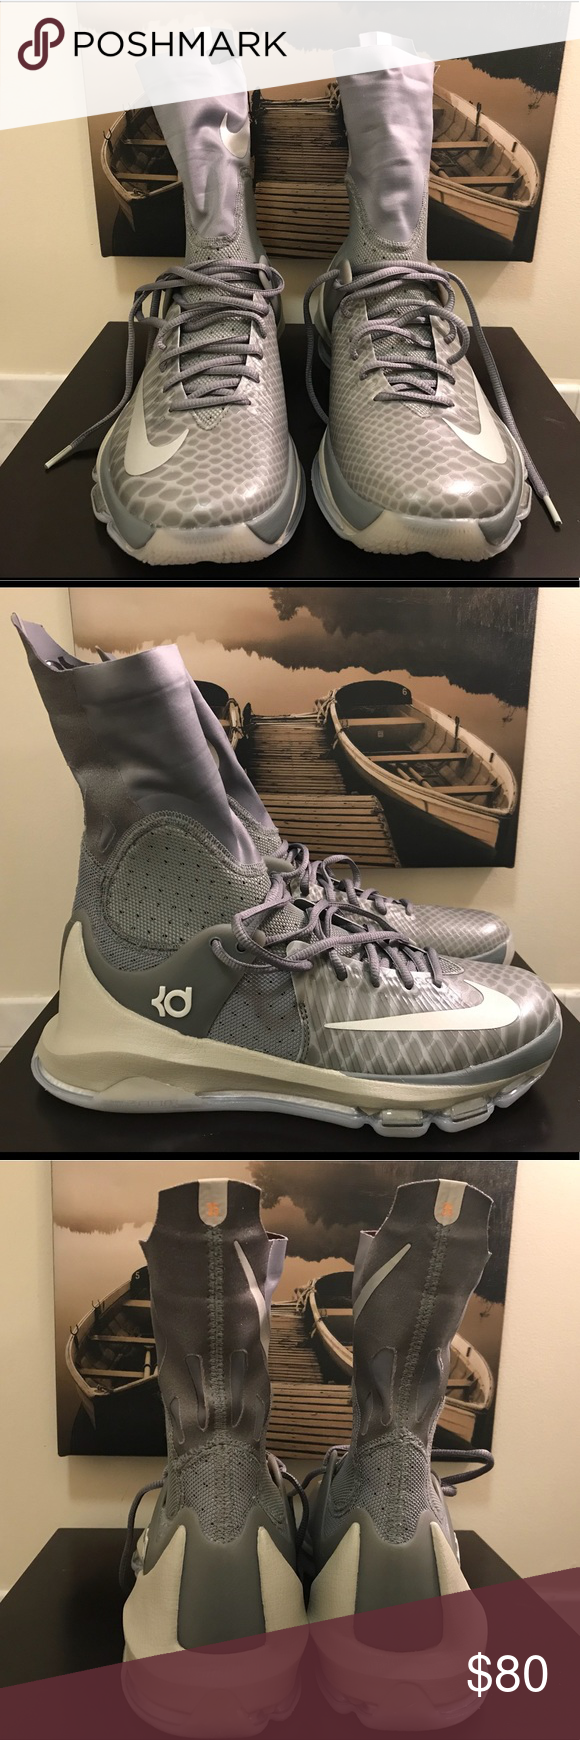 4a8907384275 ... discount code for nike kd 8 elite size 8.5 sneaker tan and grey size 8.5  new